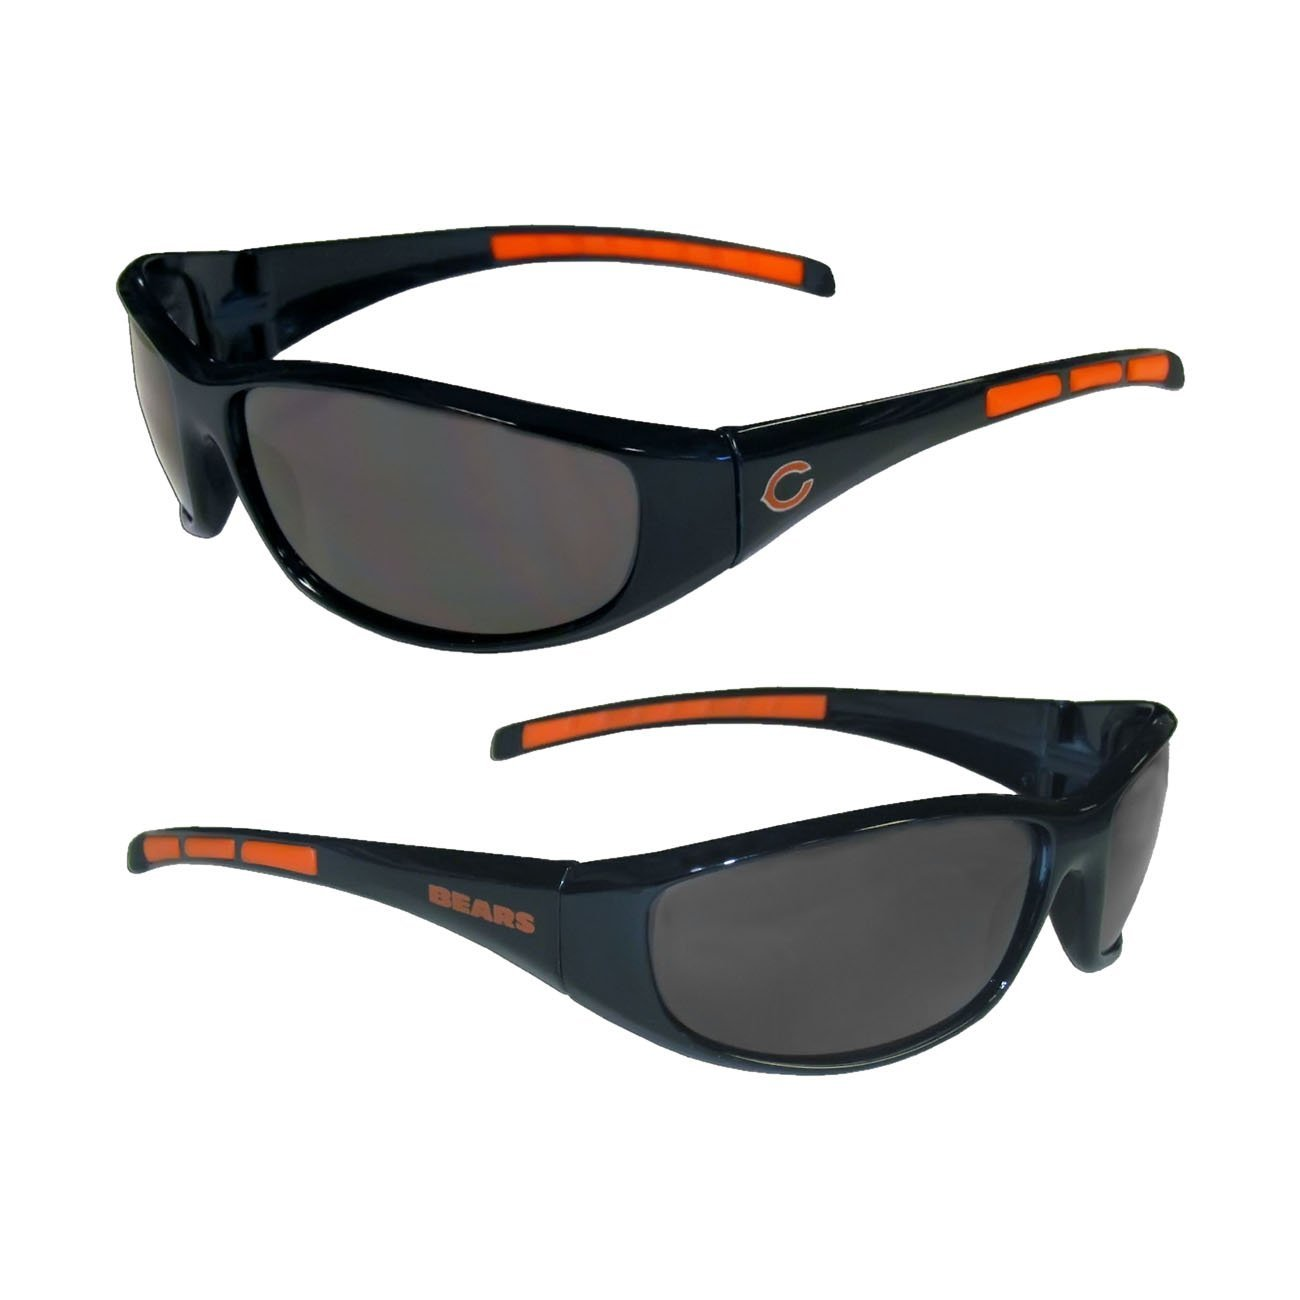 Sunglasses - Series 2 - NFL - Chicago Bears